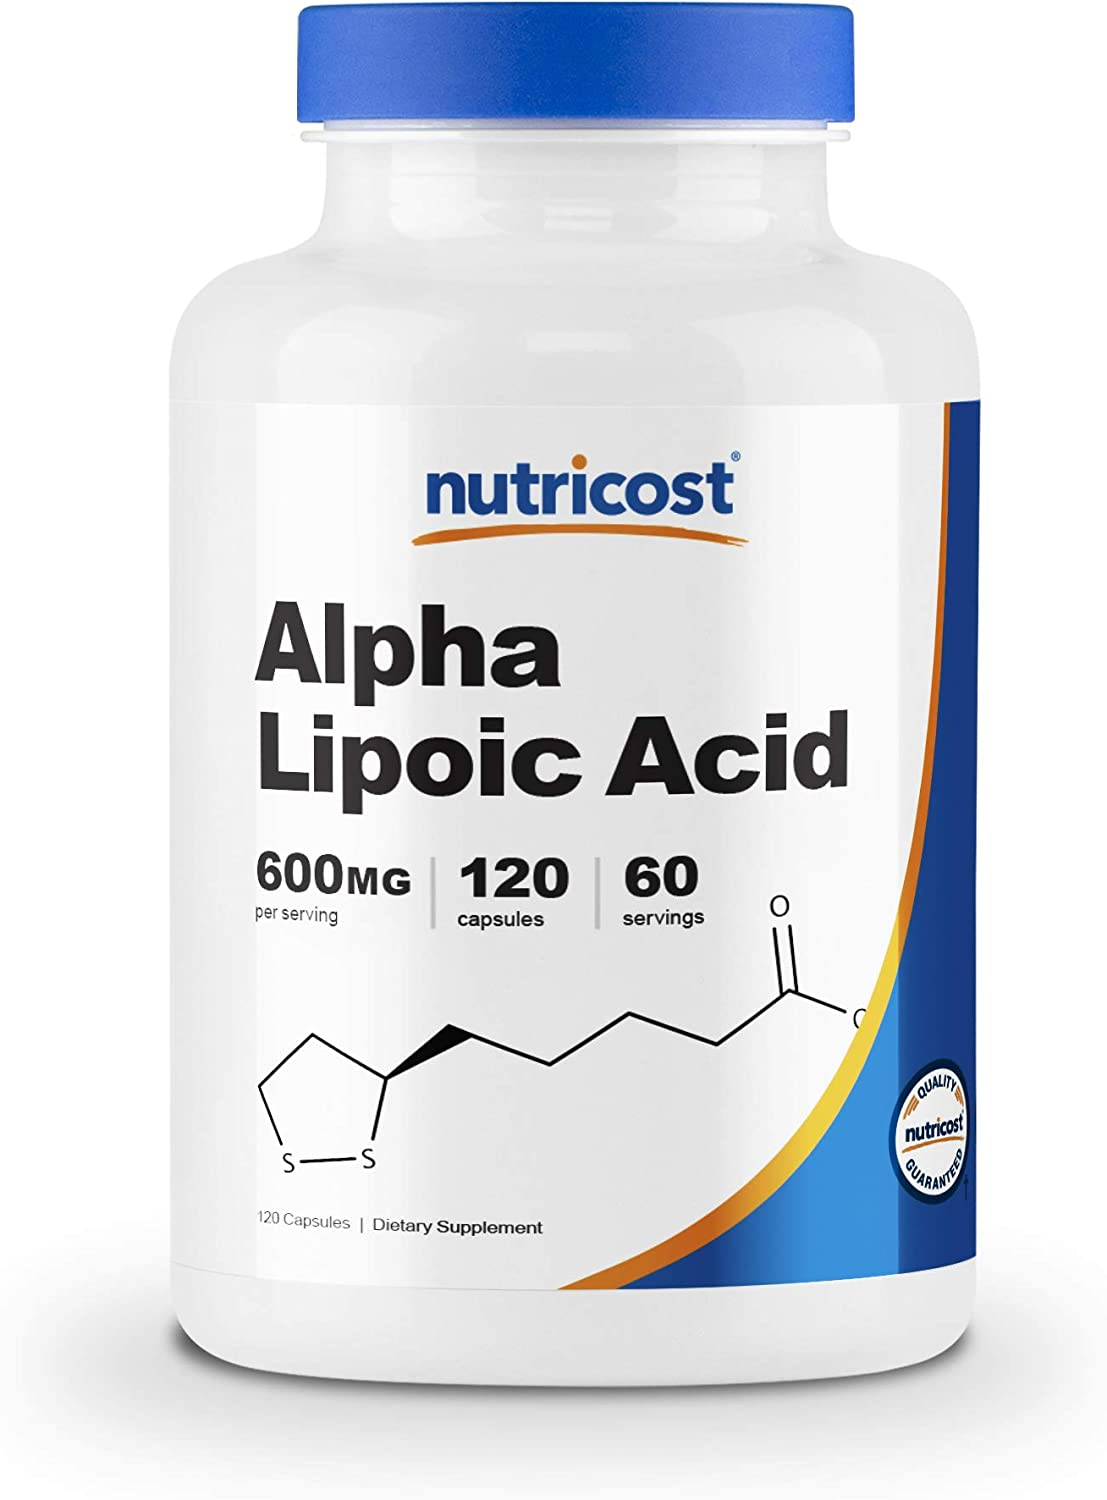 Nutricost Alpha Lipoic Acid 600mg Per Serving 120 Capsules, 60 Servings - Plant Based Caps, Non-GMO